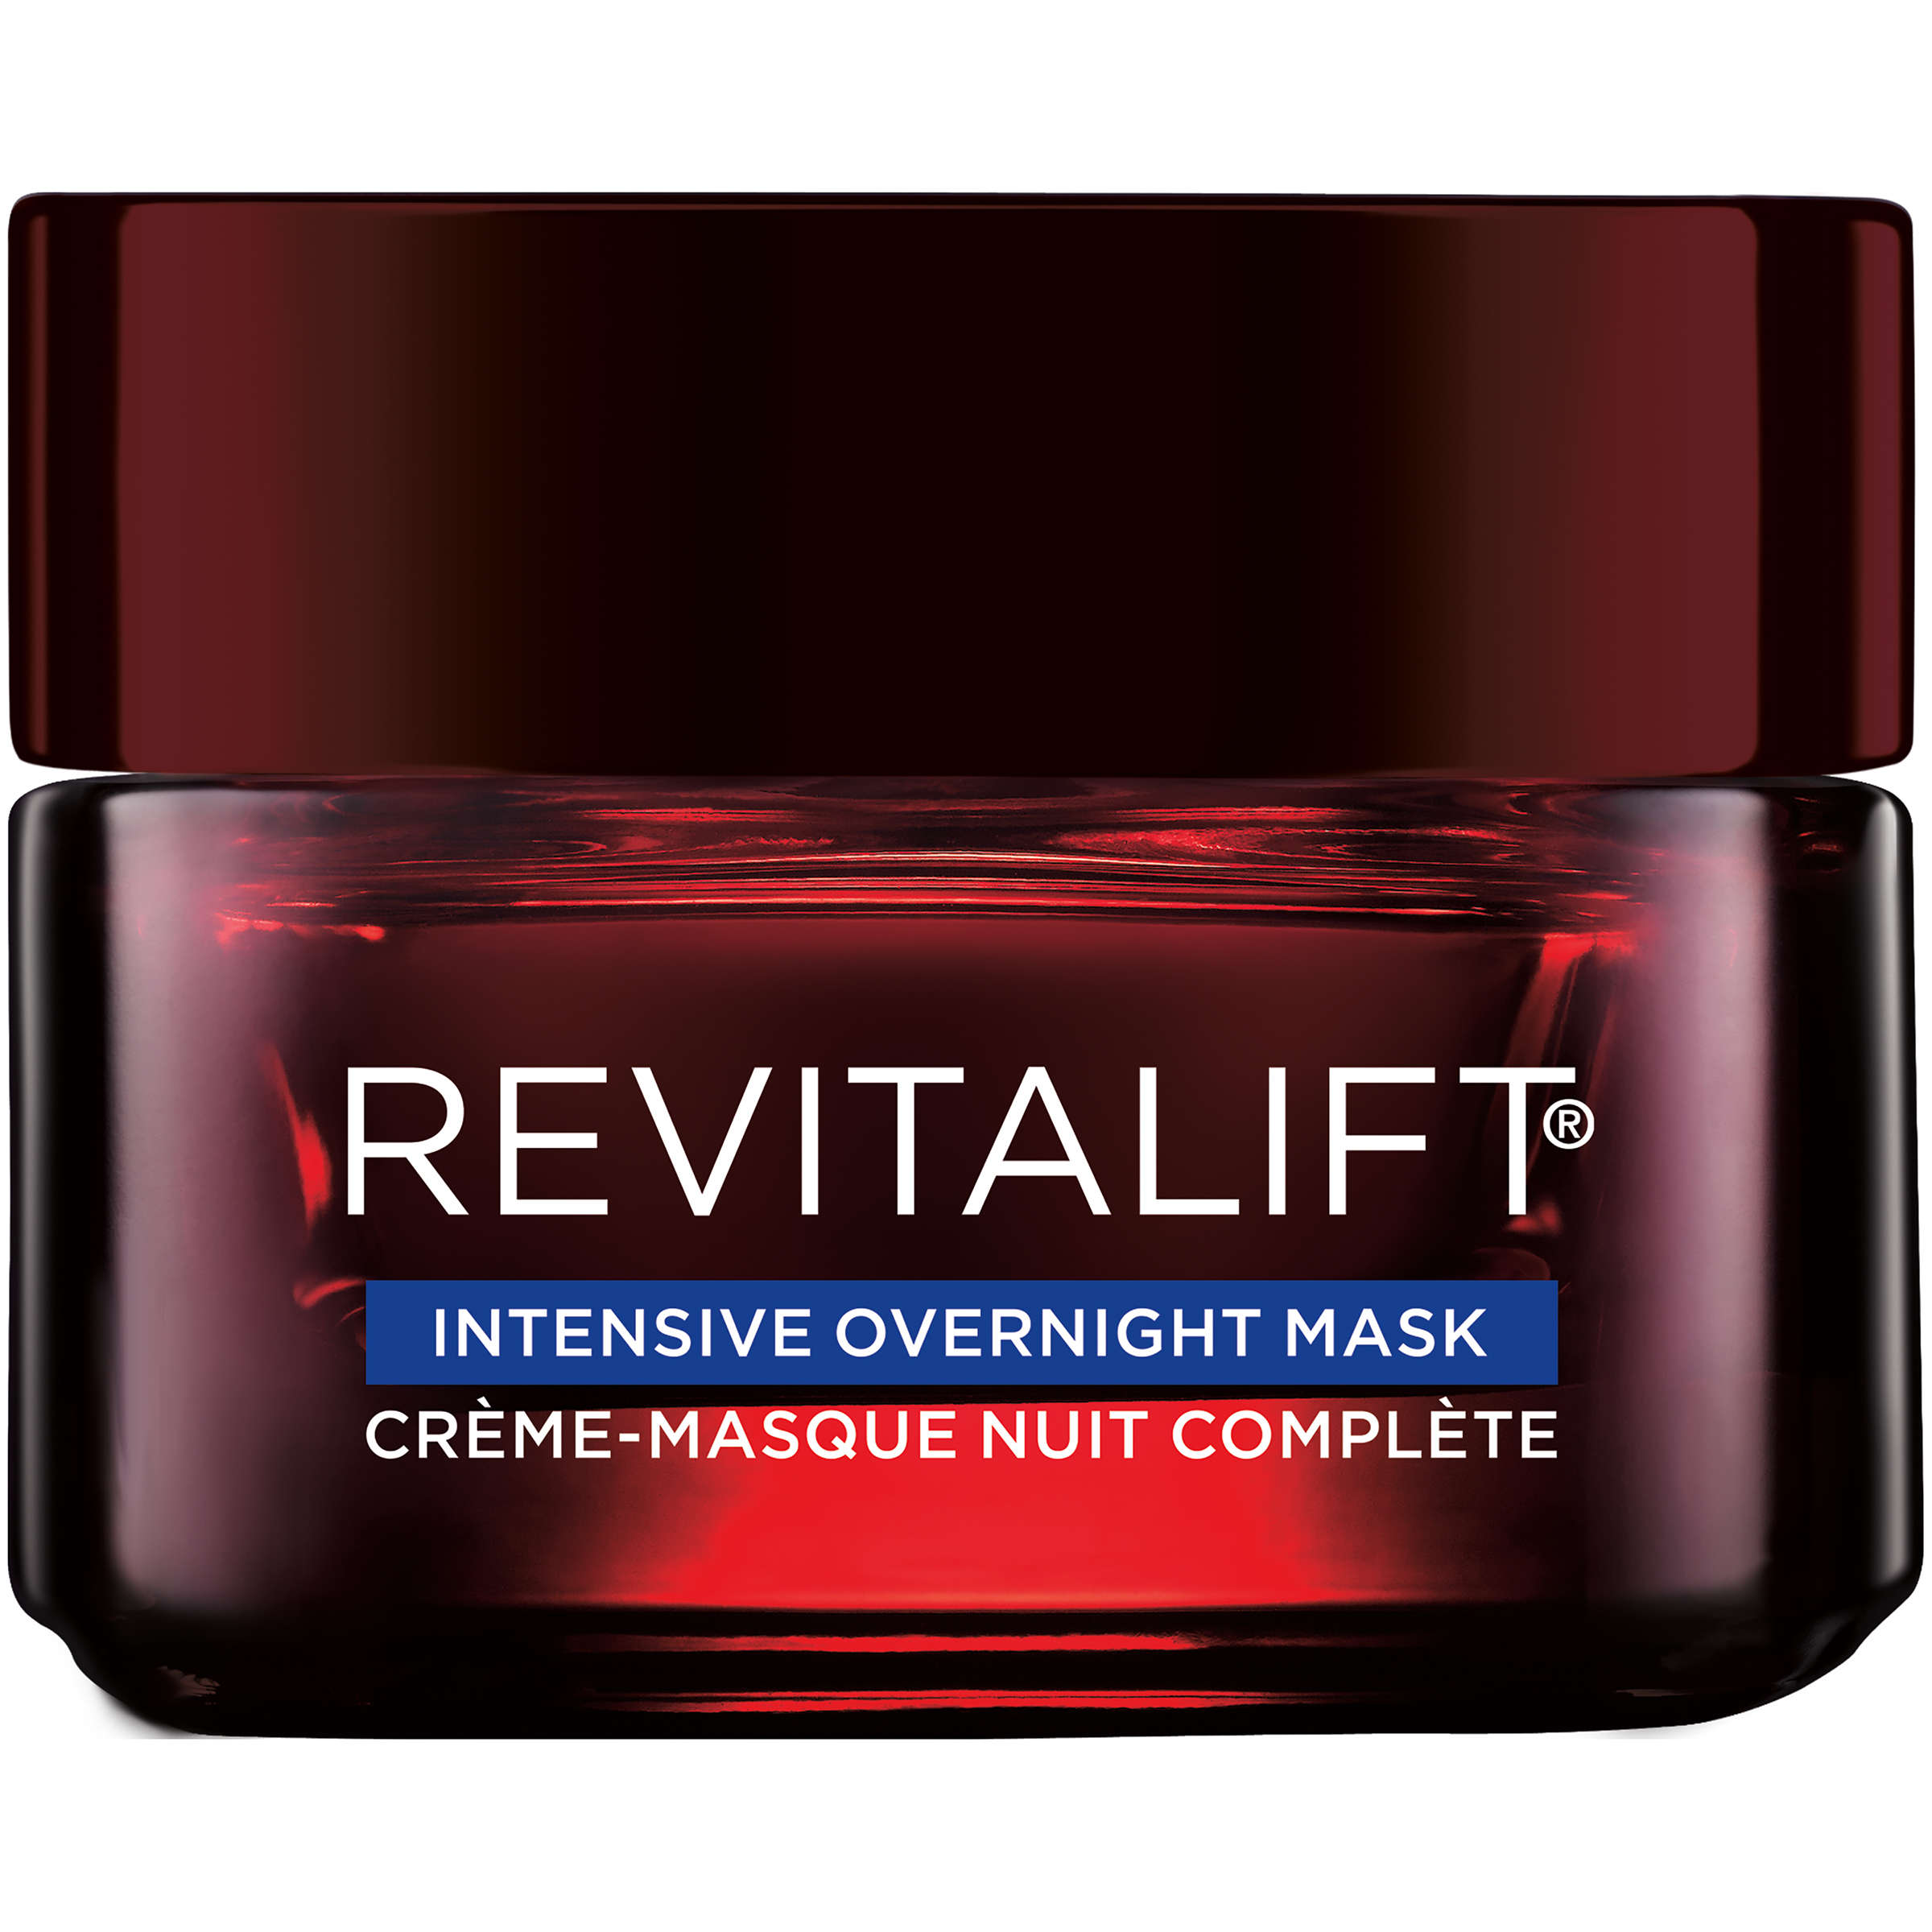 L'Oreal Paris Revitalift Triple Power Intensive Overnight Face Mask